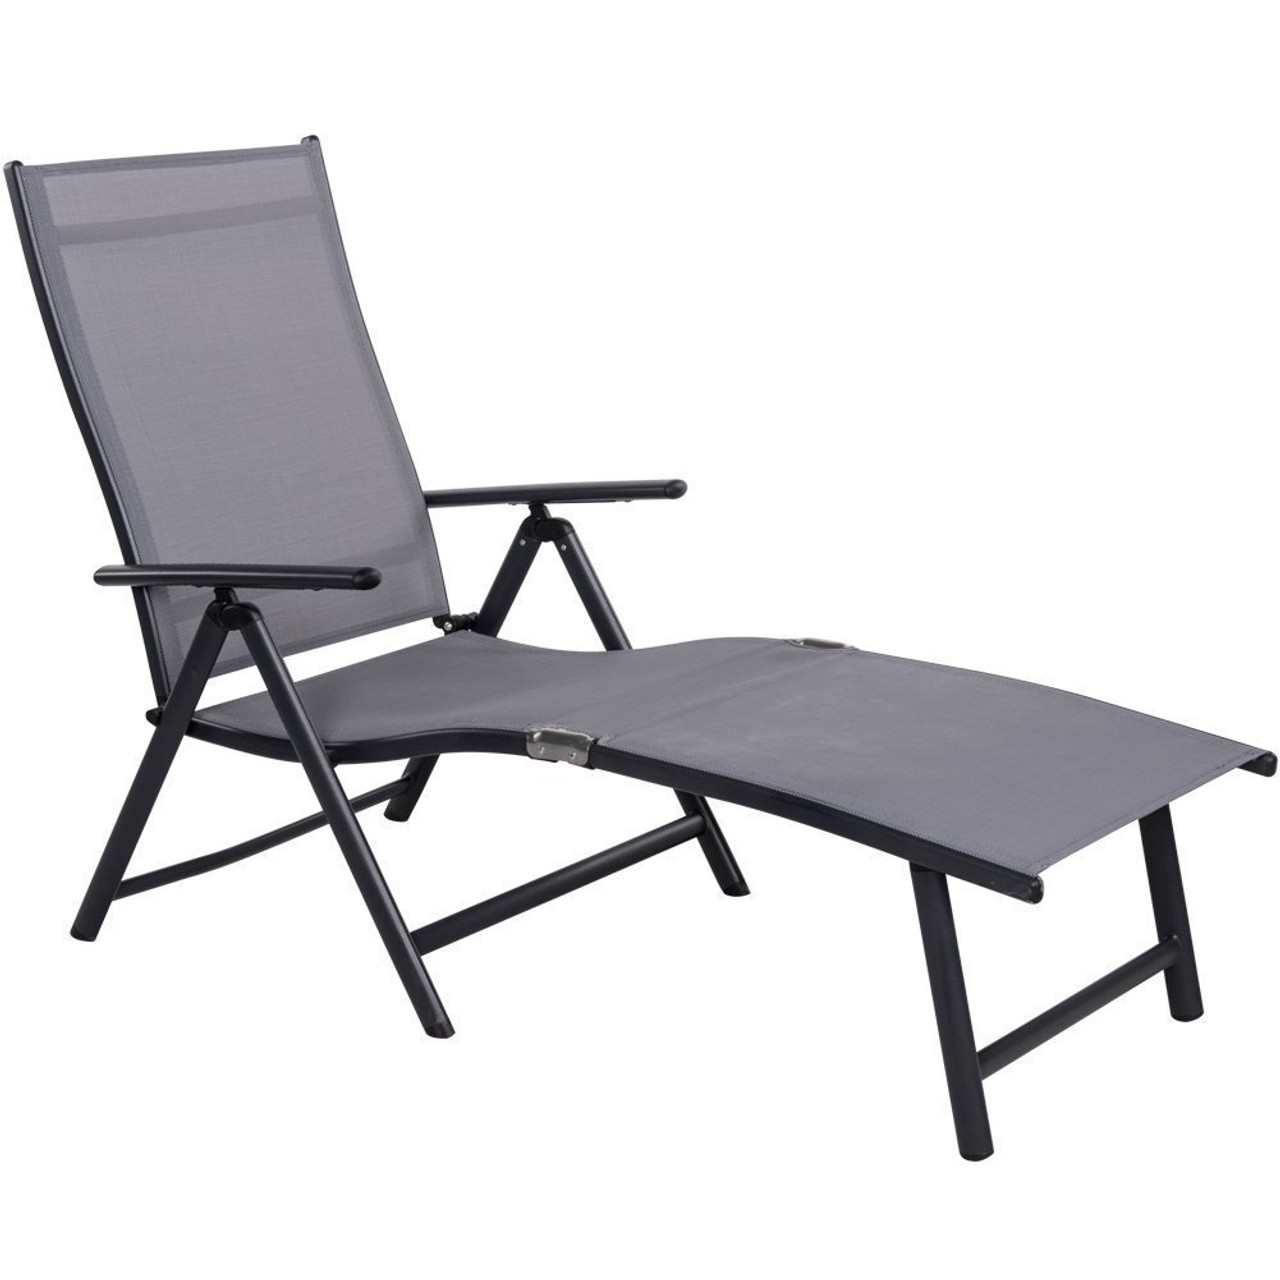 resort furniture for ideas wicker aluminum chaise lounge best your outdoor the what chair gallery chairs discount fascinating awesome pool percent